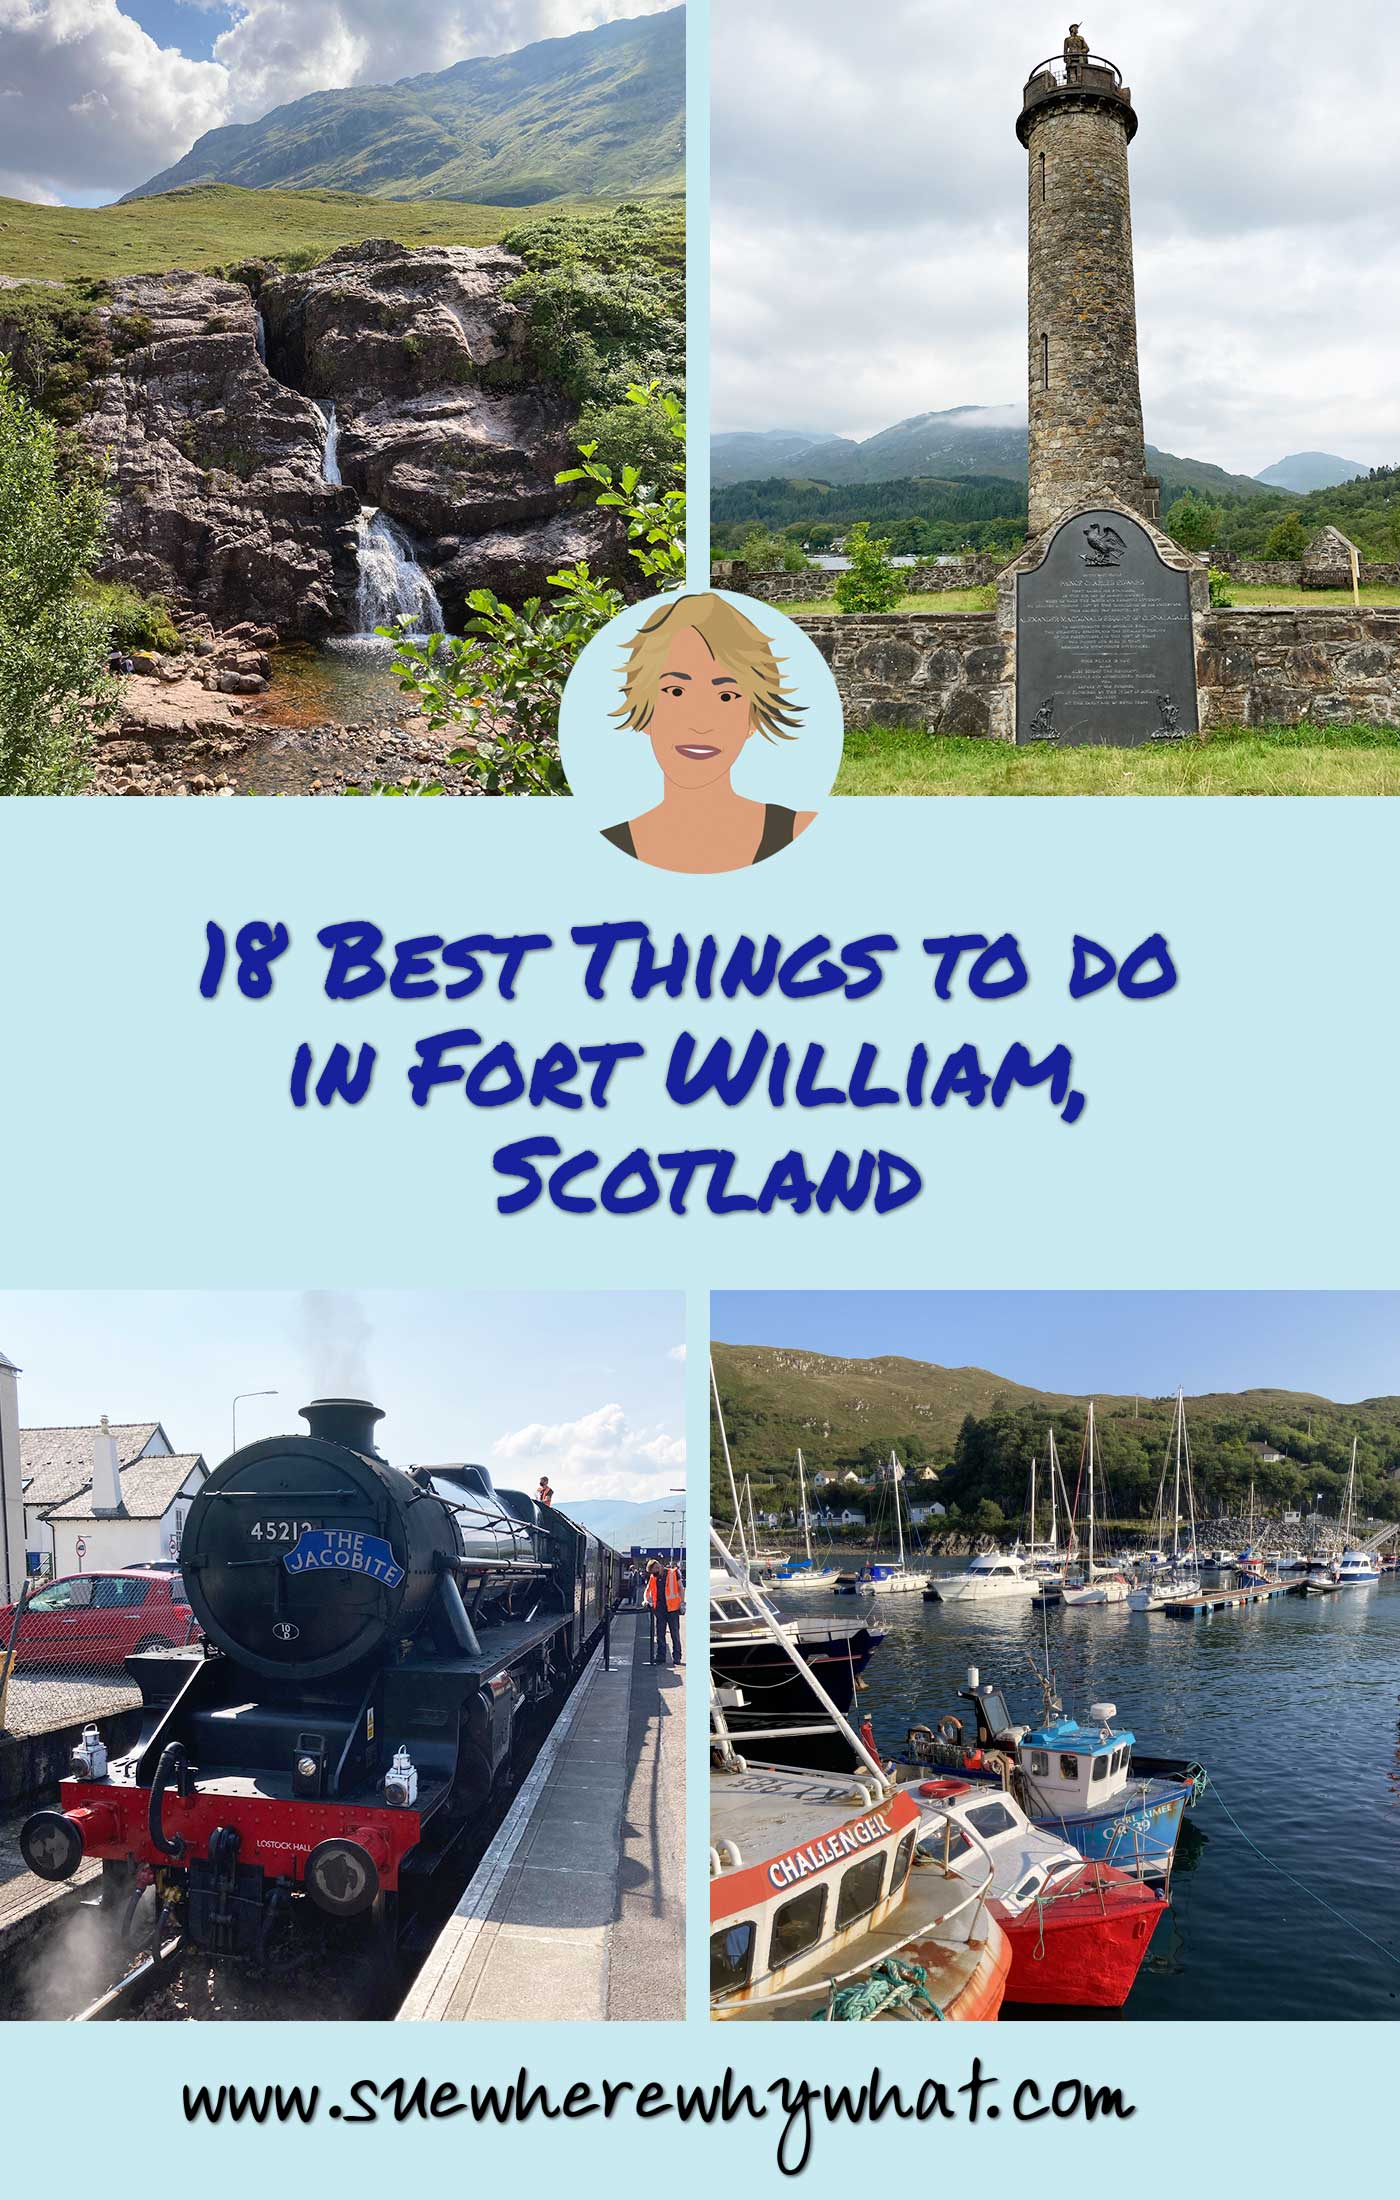 18 Best Things to do in Fort William, Scotland